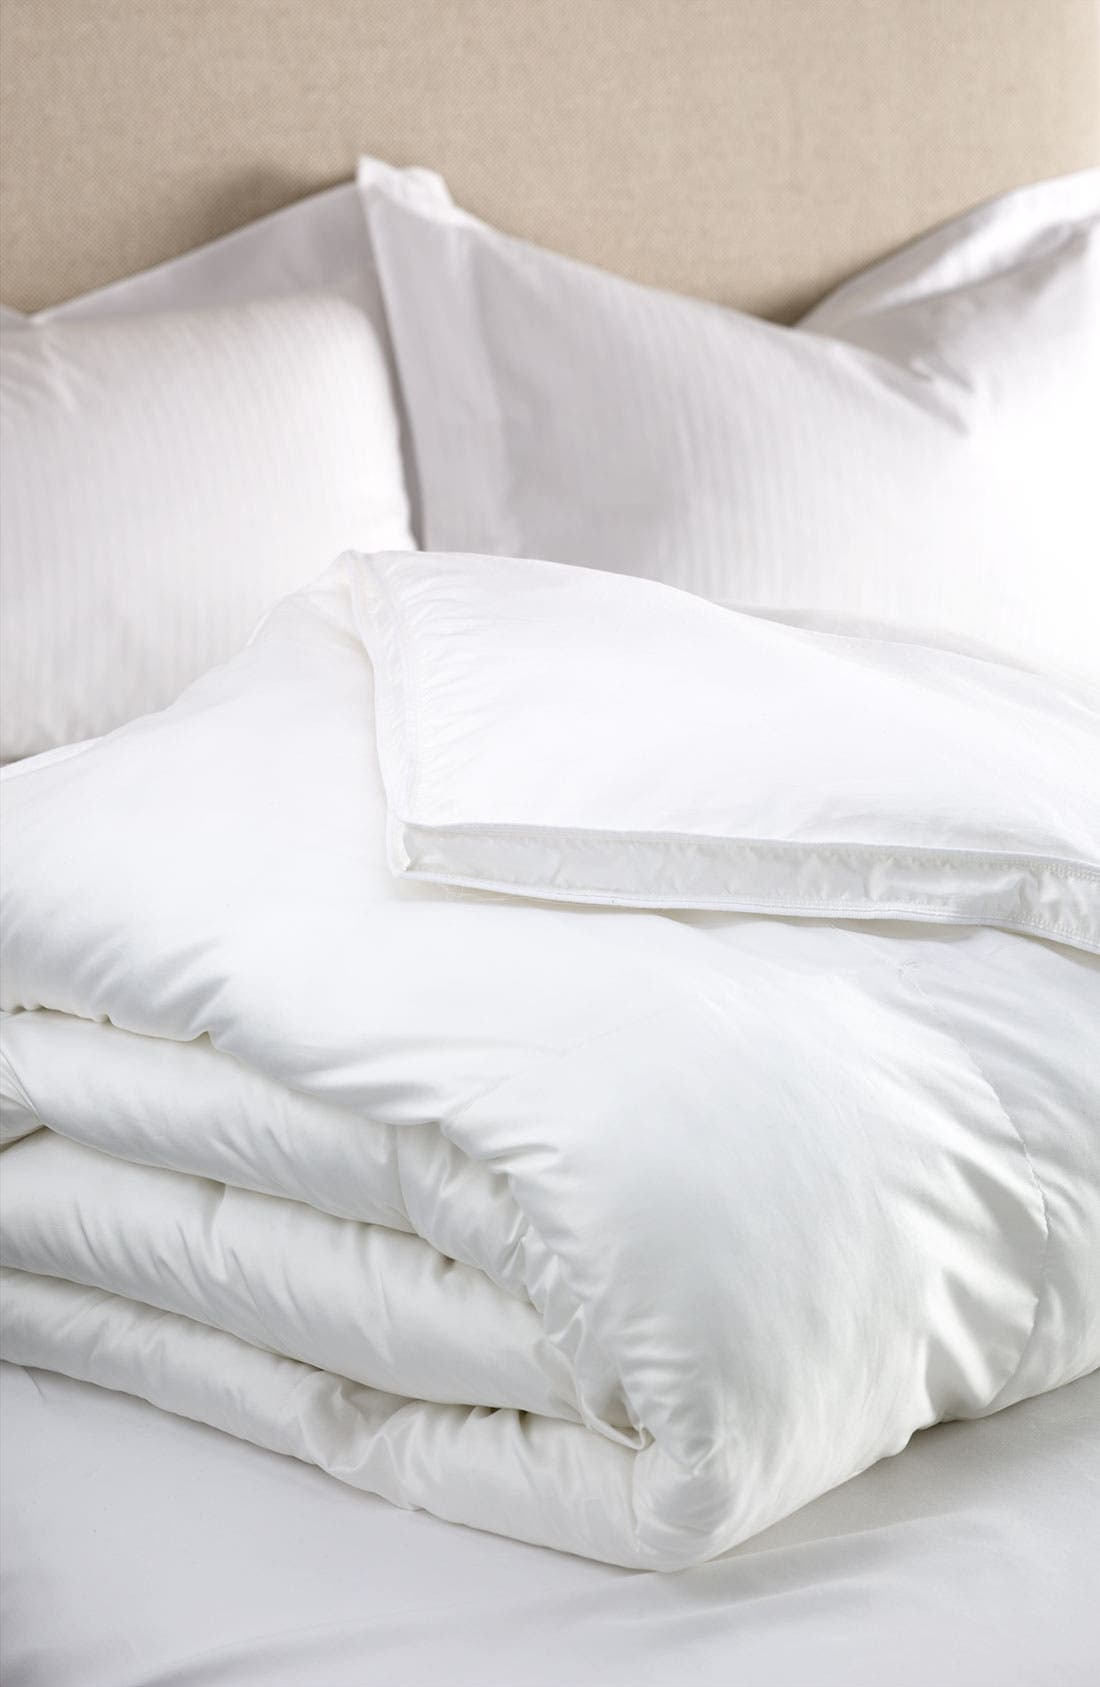 Main Image - Westin At Home 200 Thread Count Bed Down Duvet Insert